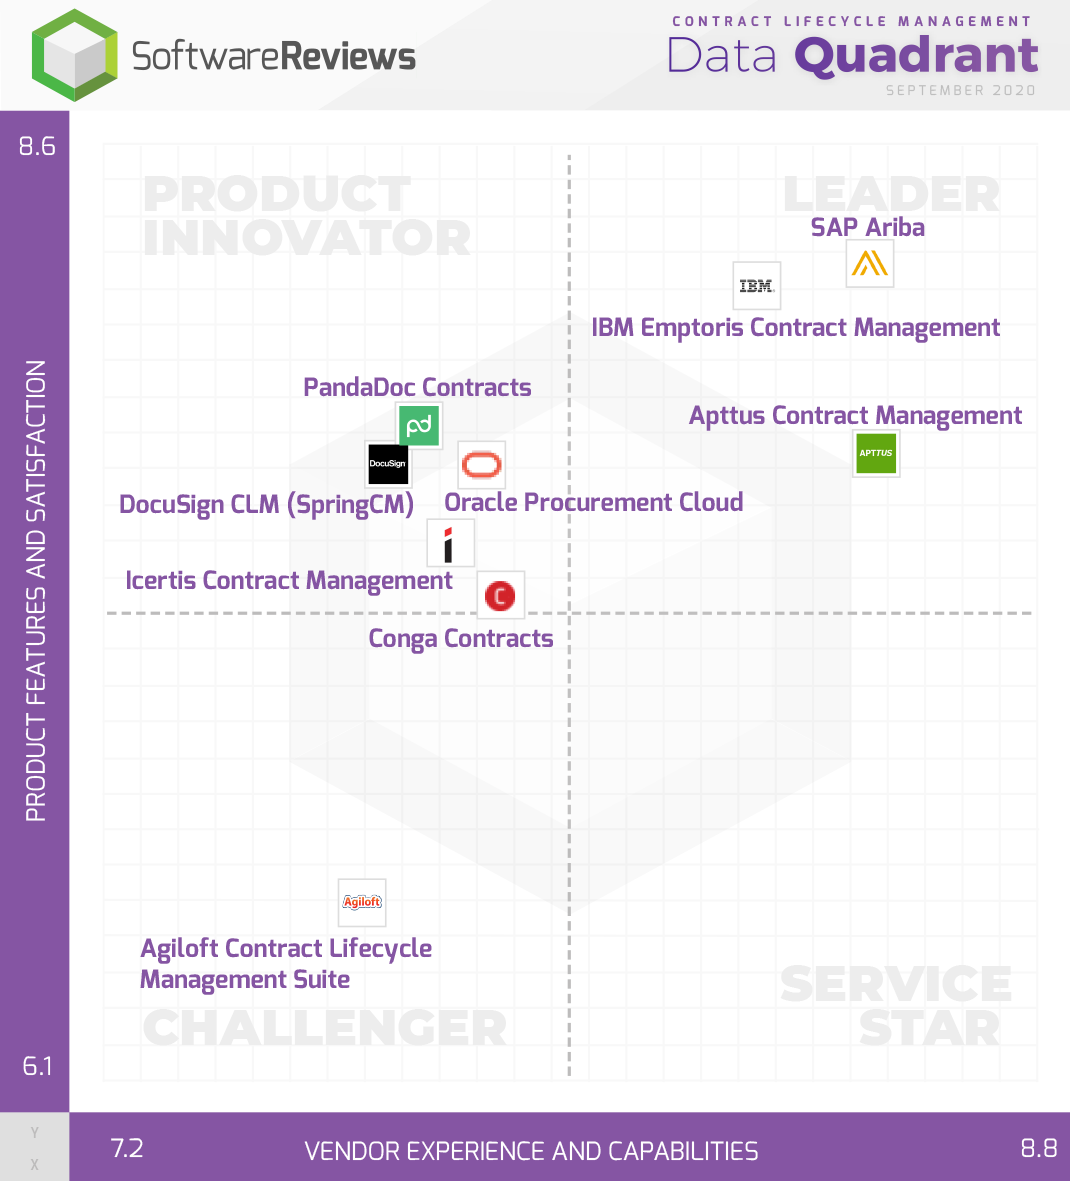 Contract Lifecycle Management Data Quadrant